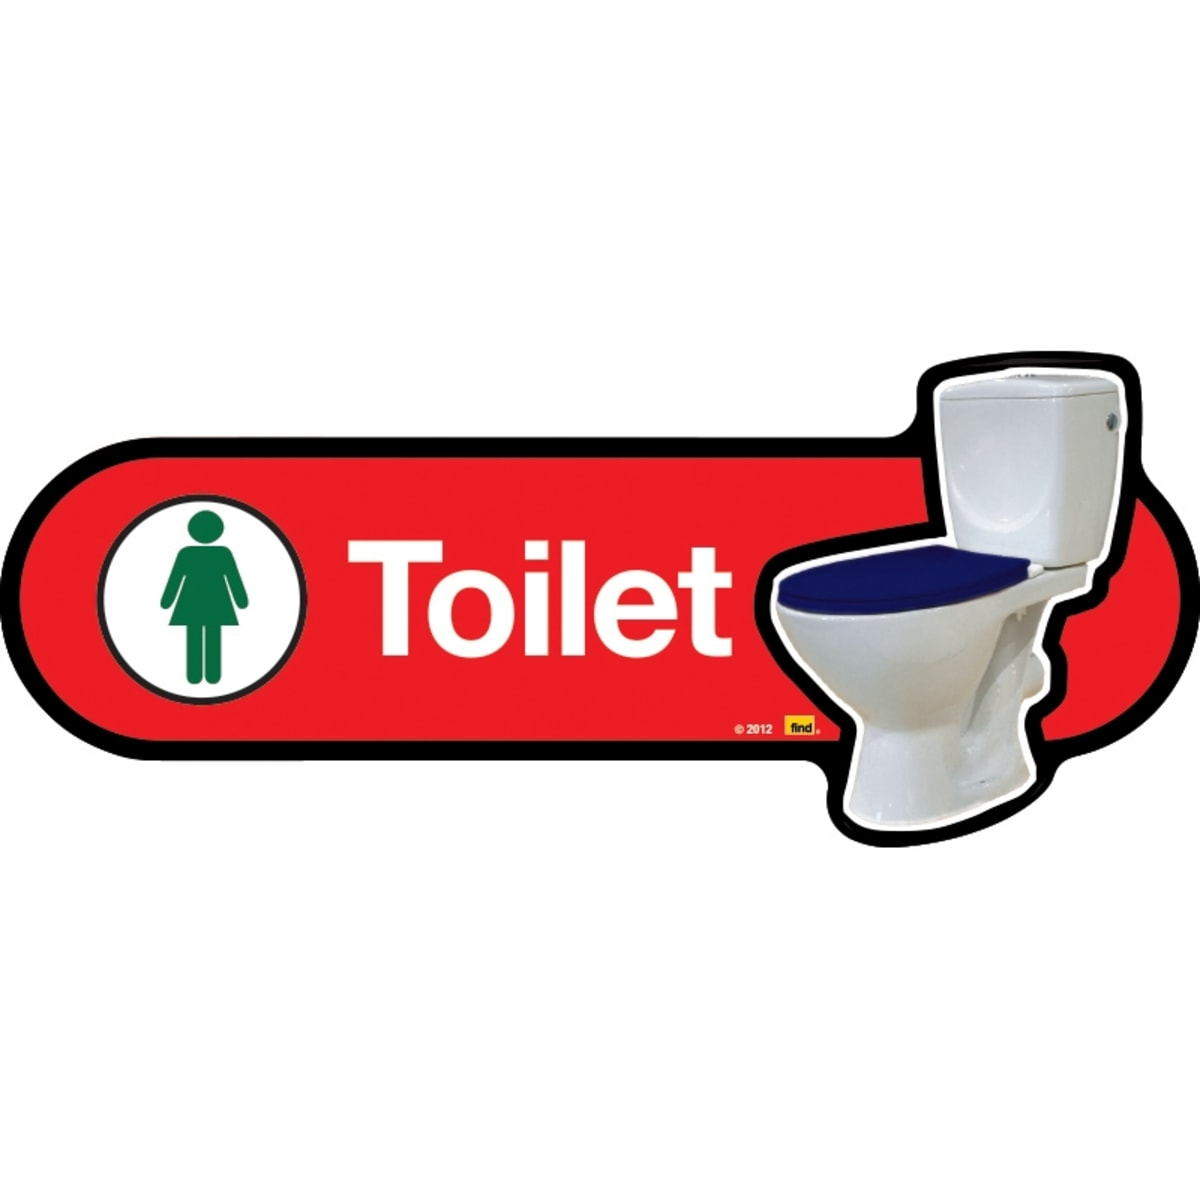 Female Toilet with Symbol - Dementia Signage for Hospitals